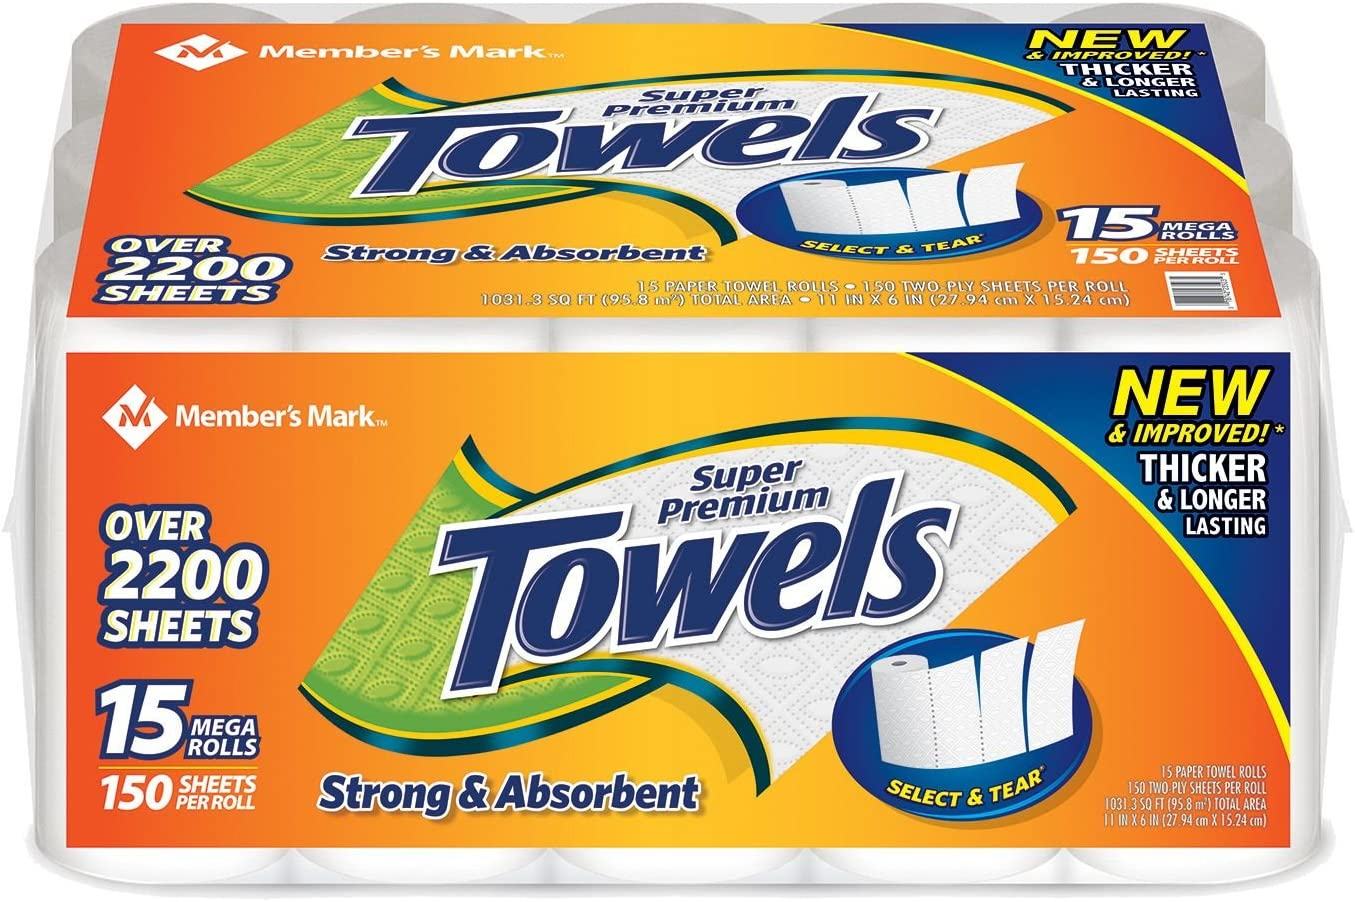 Member's Mark Super Premium Paper Towels (15 rolls, 150 sheets per roll)